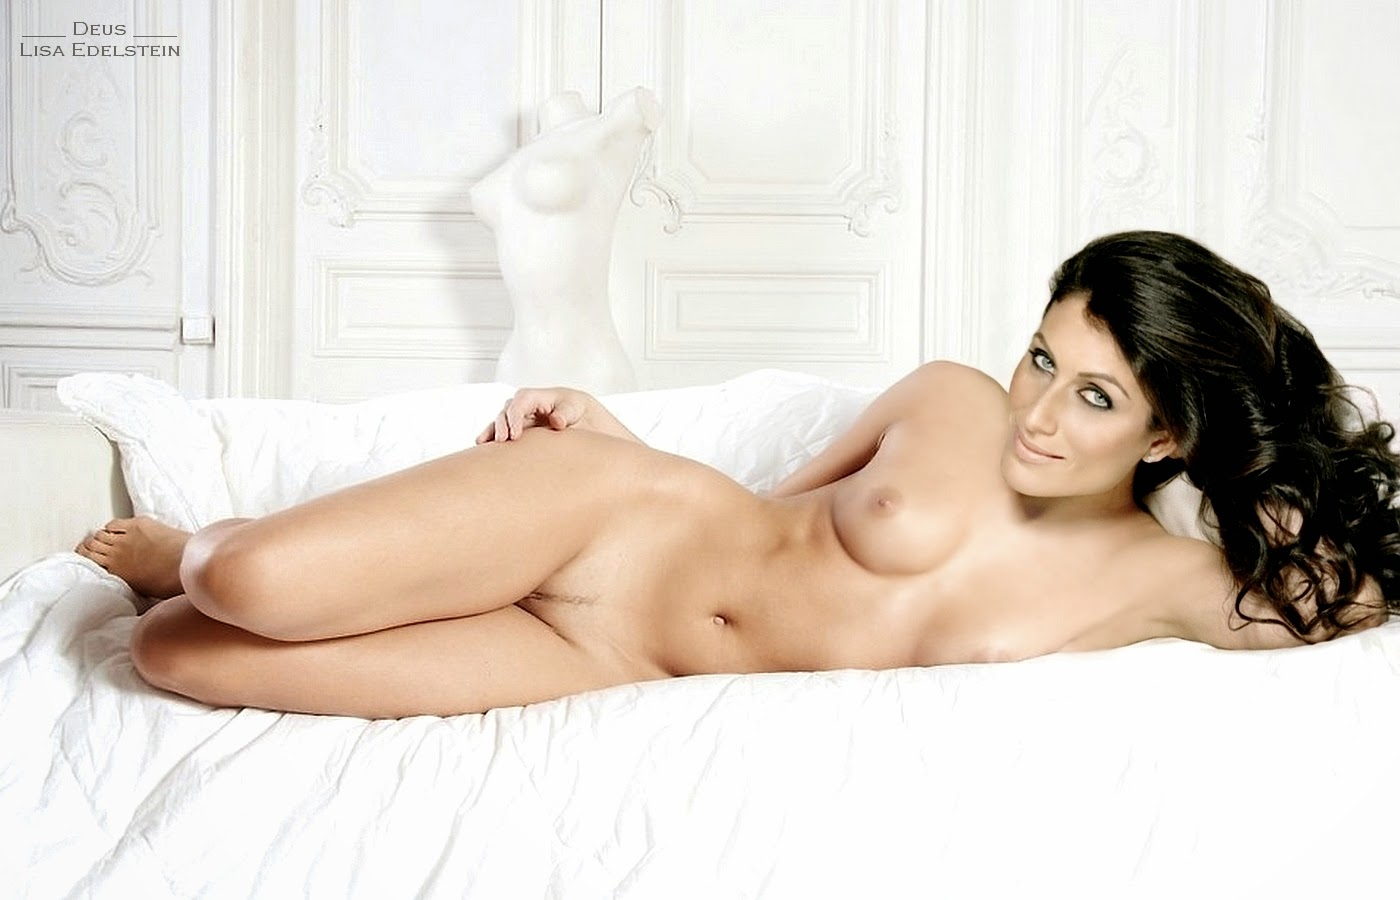 The most beautiful young girl in the world naked